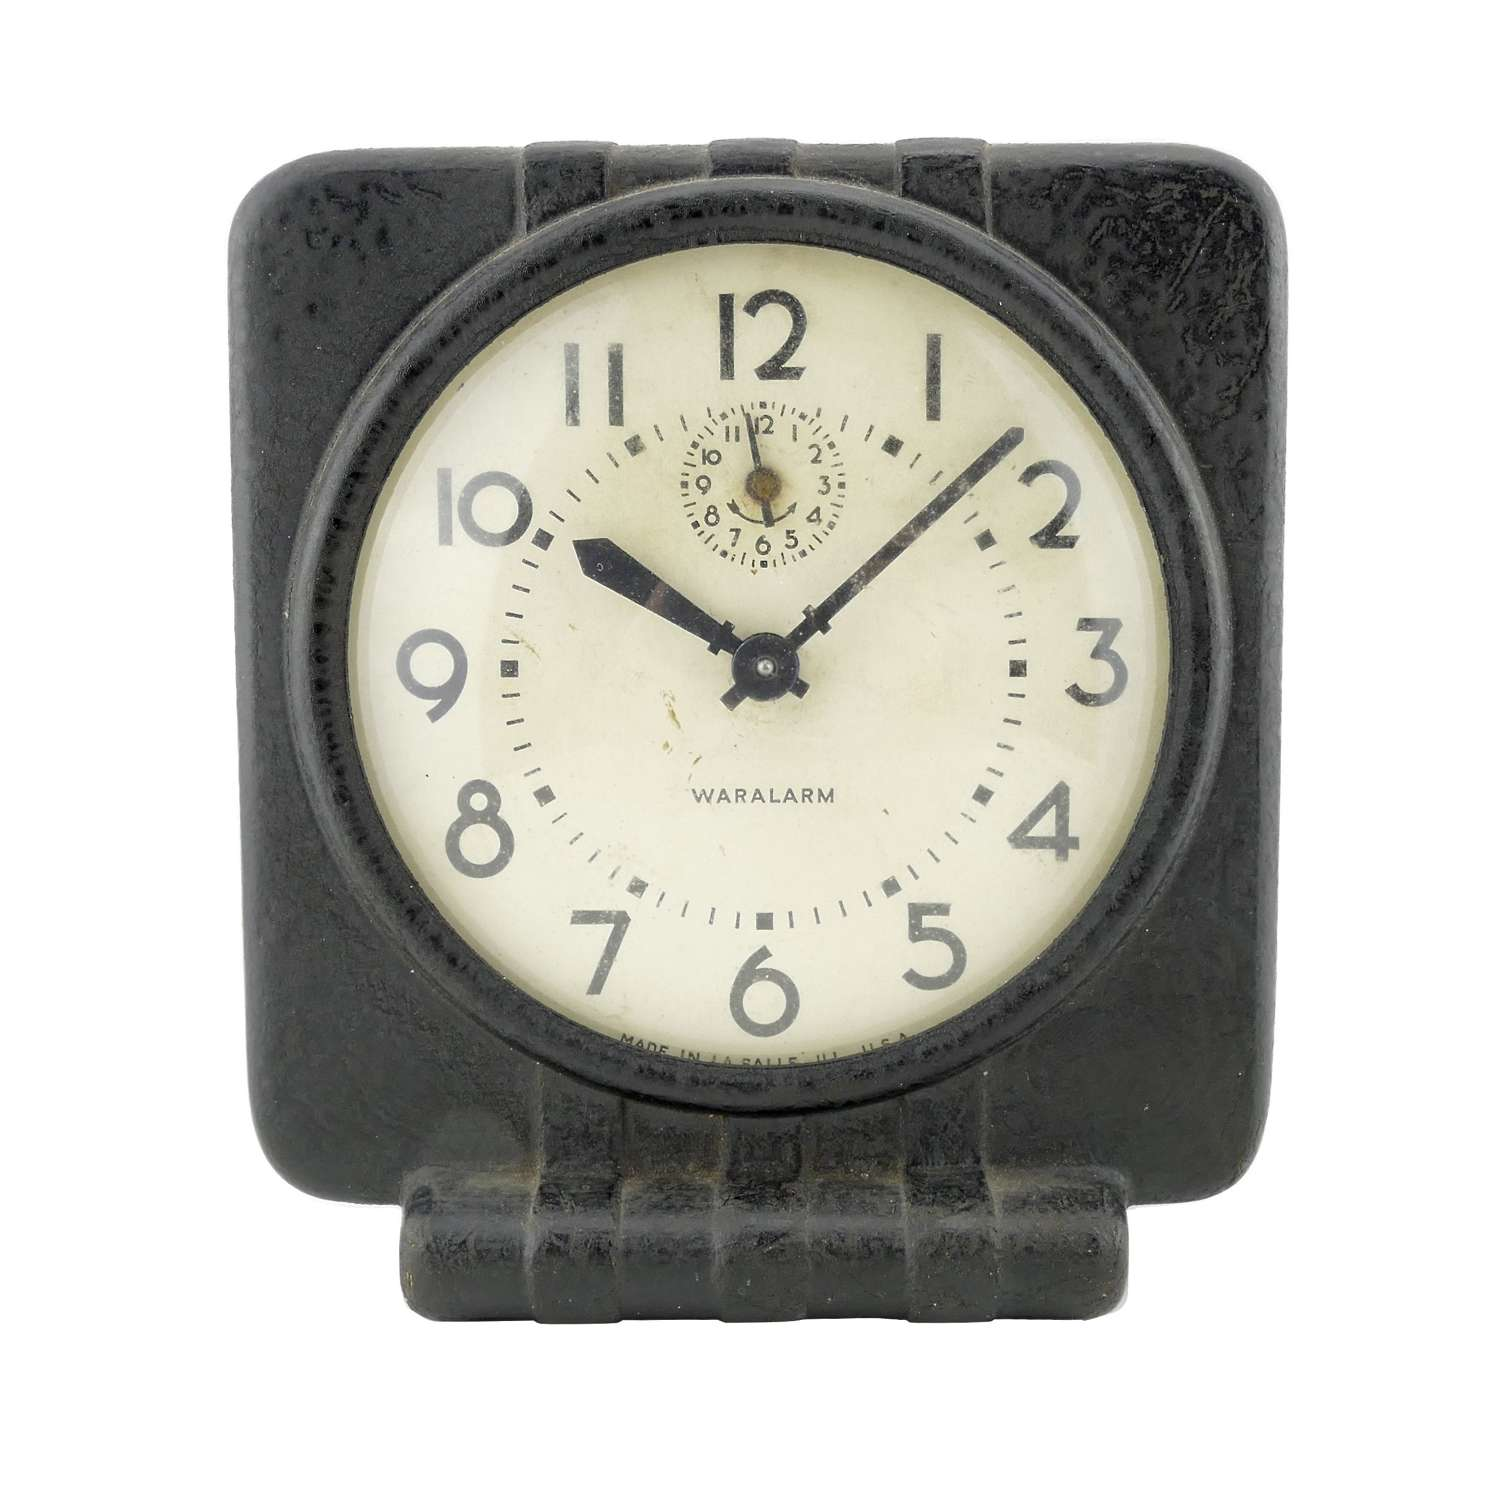 USAAF marked 'Waralarm' clock